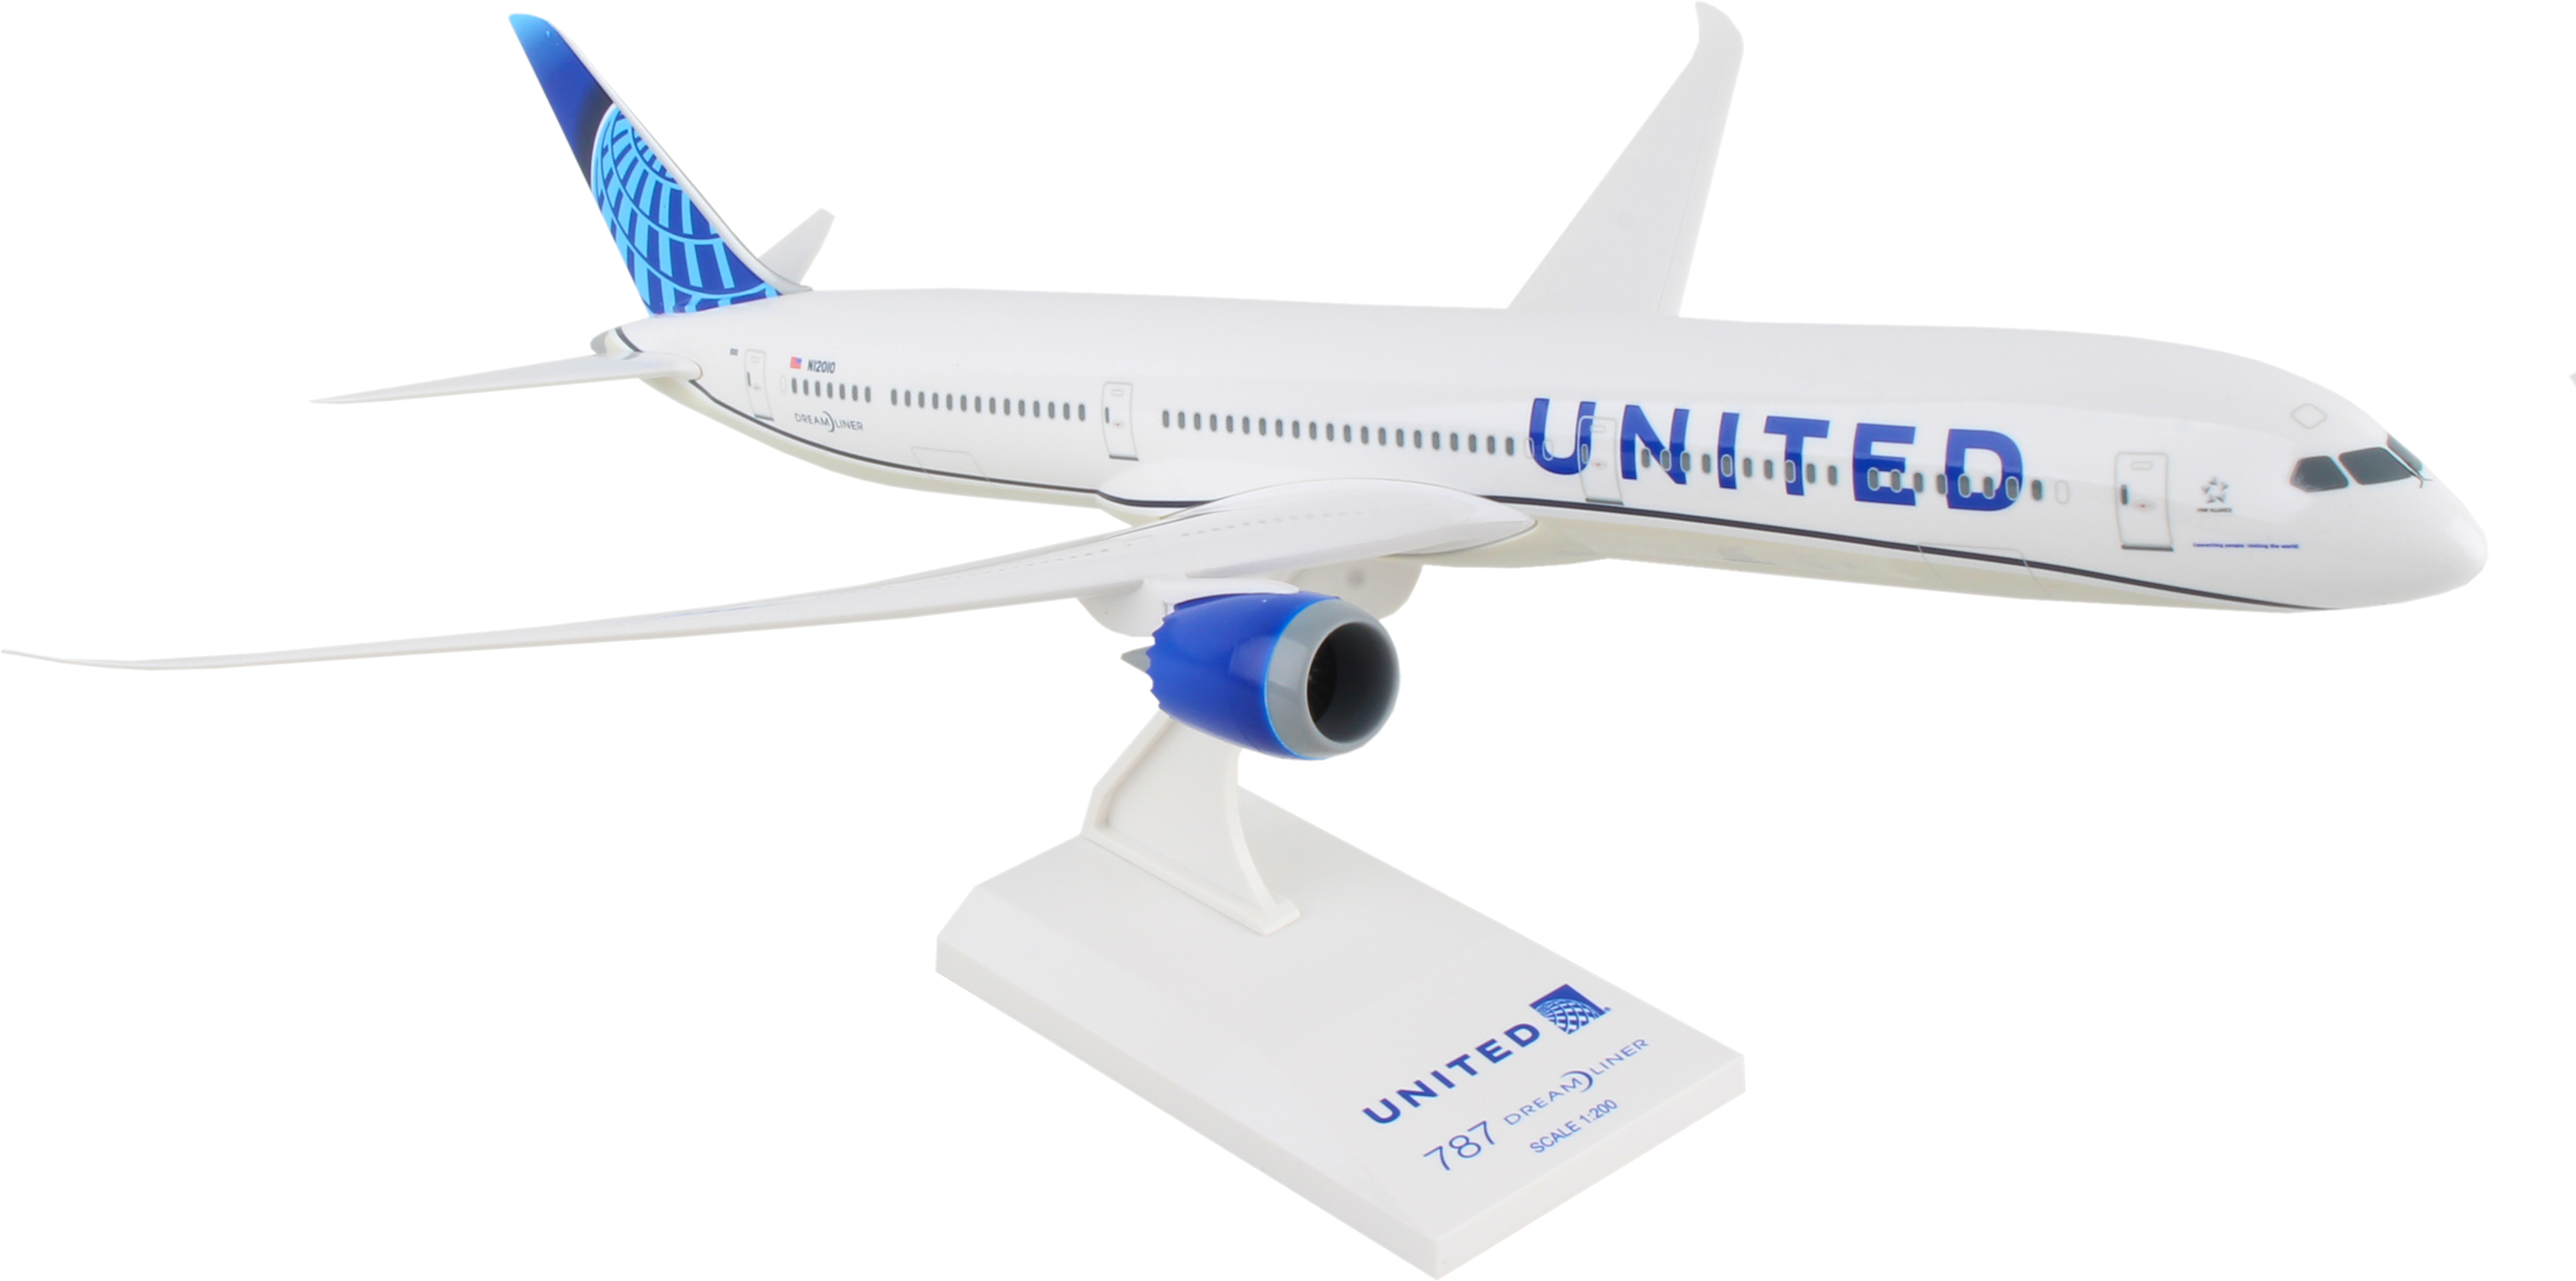 SkyMarks United Airlines Boeing 787-10 New Livery Maßstab 1:200